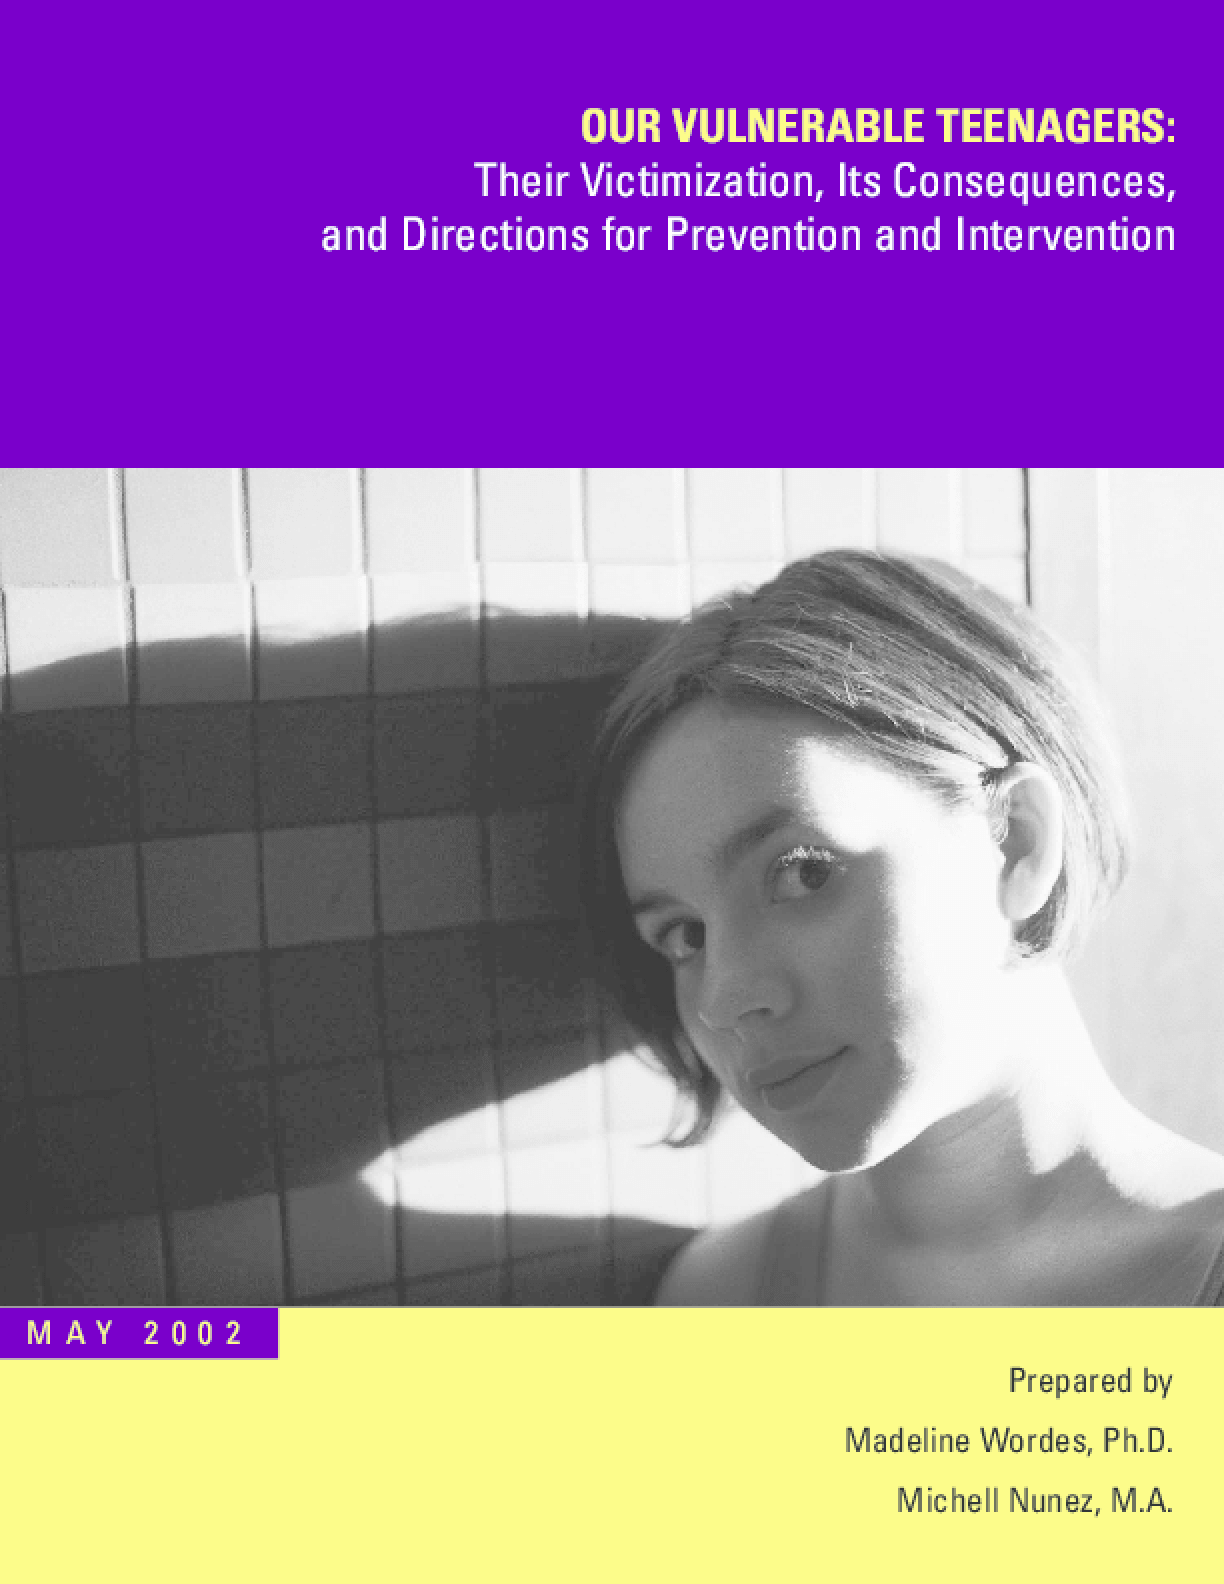 Our Vulnerable Teenagers: Their Victimization, Its Consequences, and Directions for Prevention and Intervention